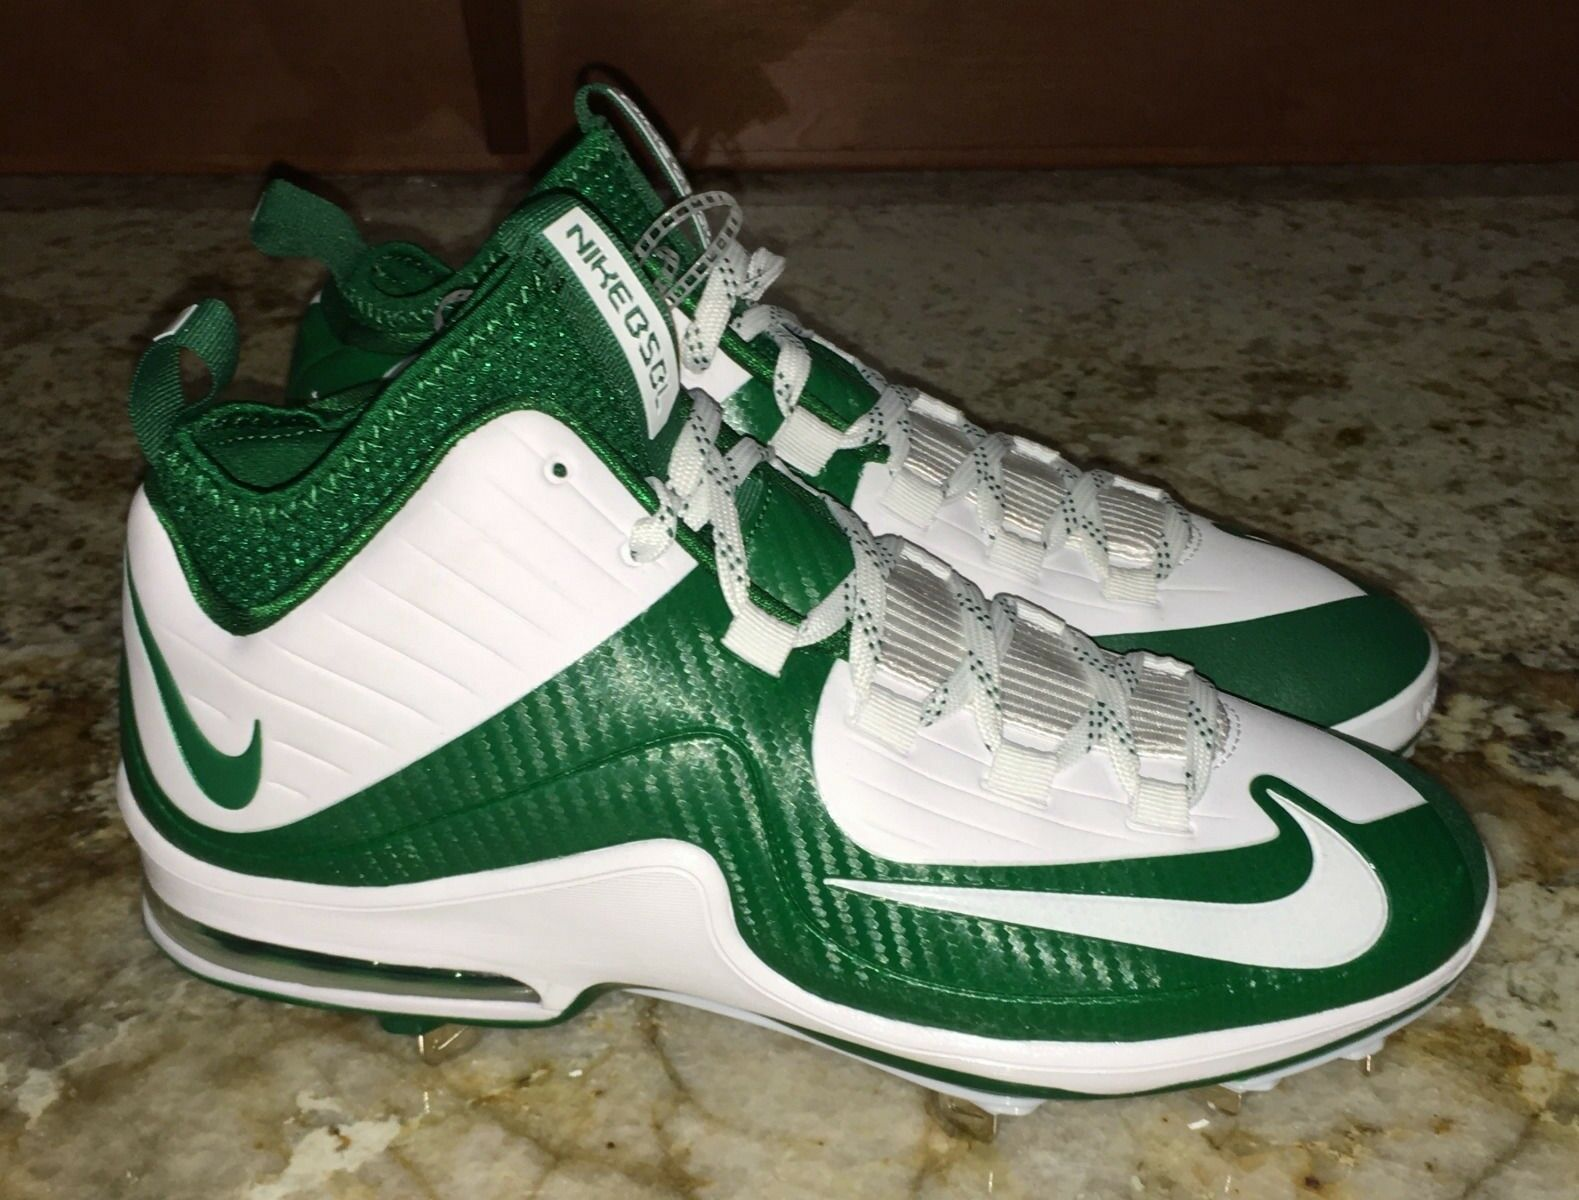 NIKE Air Max MVP Elite 2 Mid White Green Metal Spike Baseball Cleats NEW Mens 9